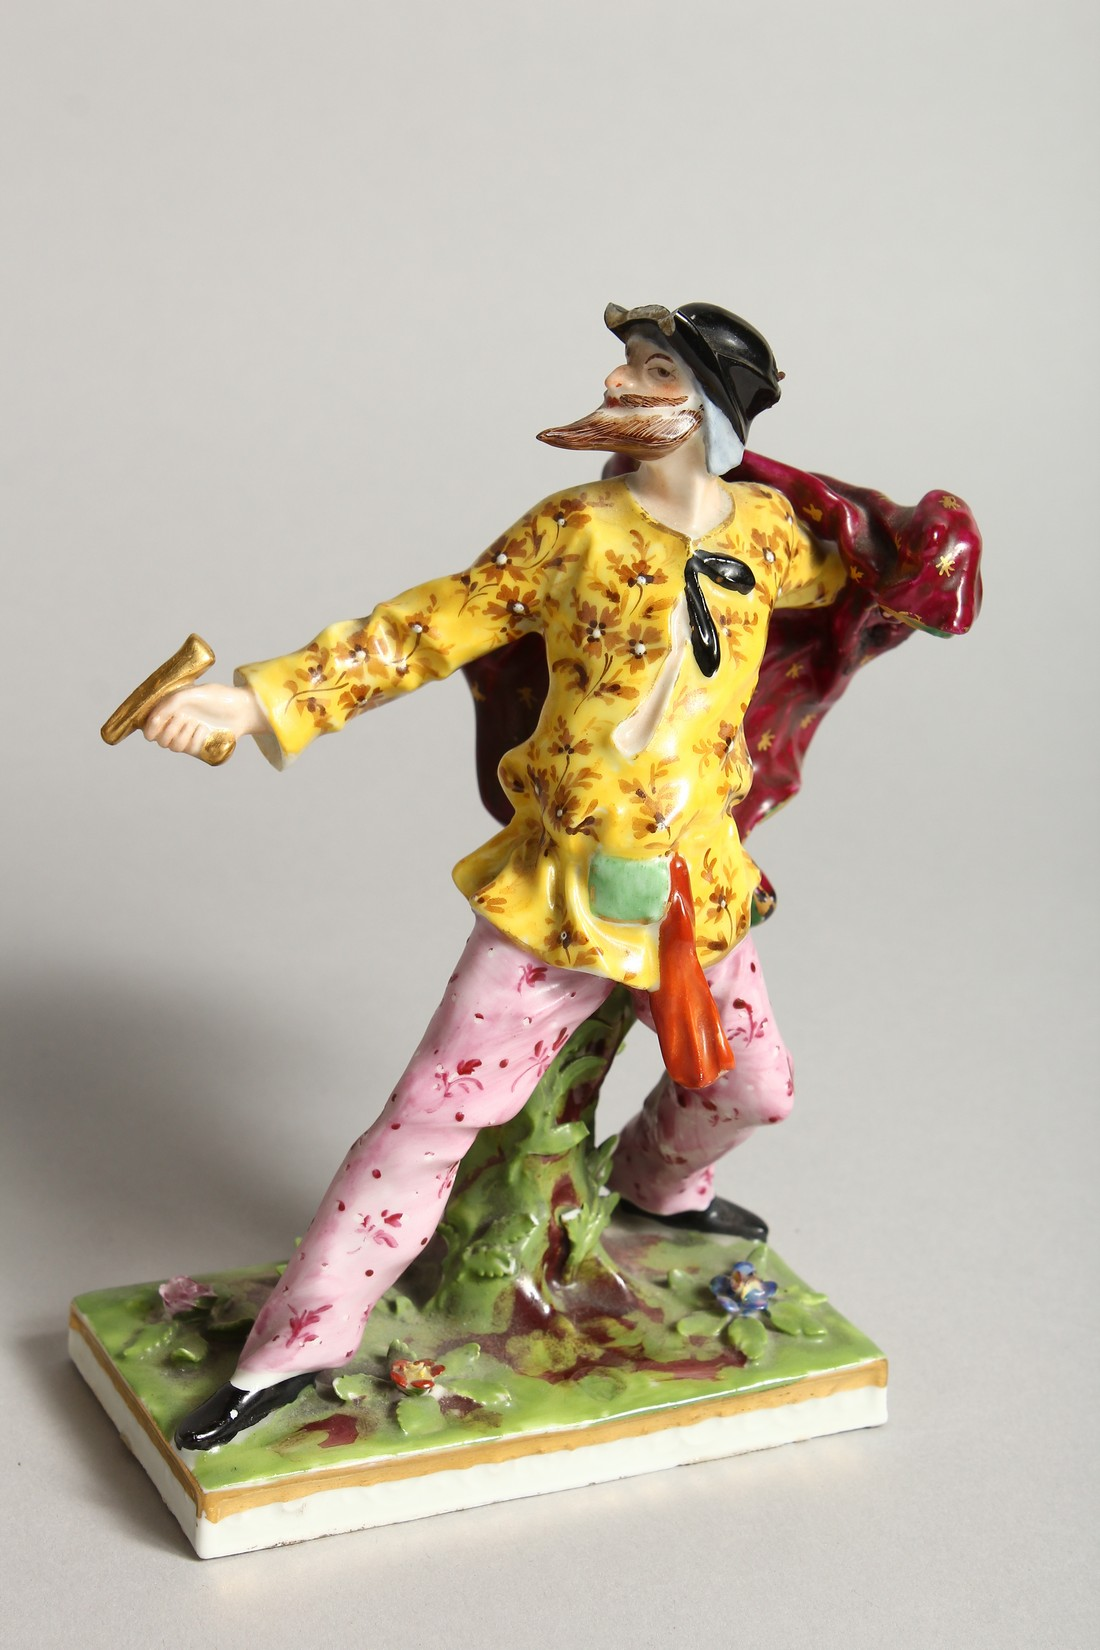 """A SET OF FOUR """"COMMEDIA DELL ARTE """" STYLE FIGURES, LATE 19TH CENTURY/EARLY 20TH CENTURY, possibly by - Image 5 of 9"""